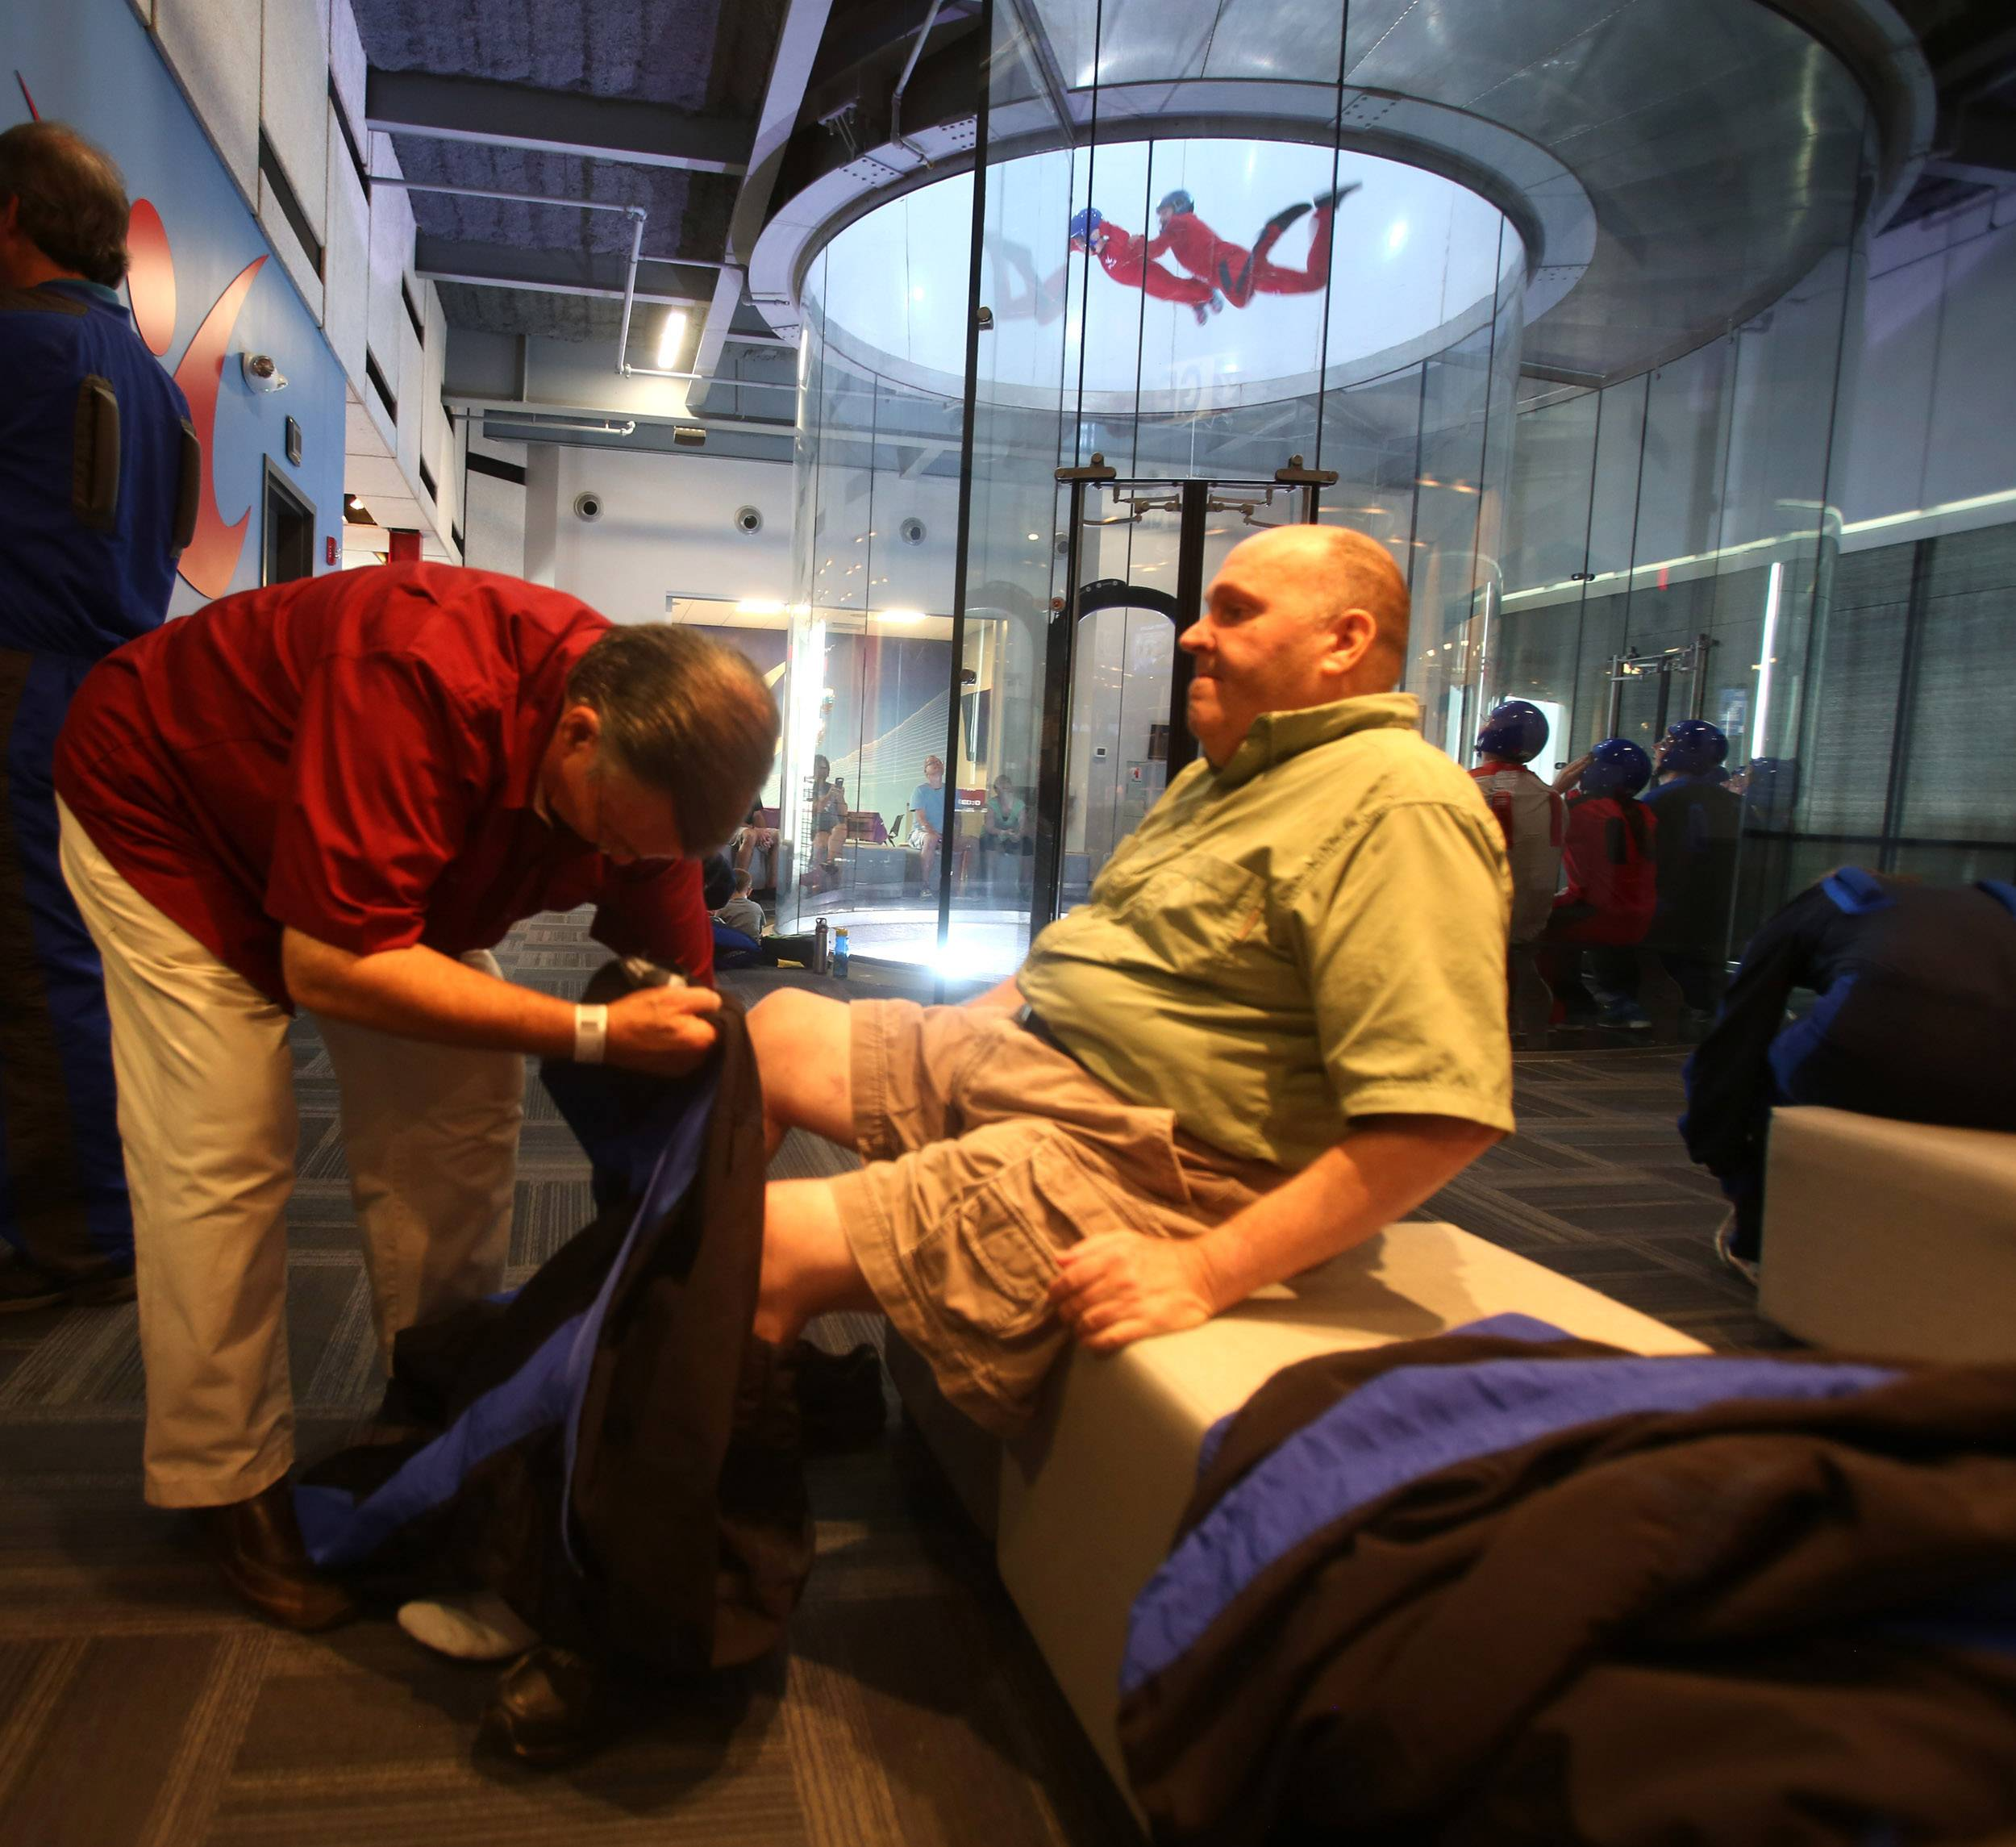 Otto Becker, 67, of Aurora is blind and ready to experience the rush of indoor sky diving at iFly in Naperville. His friend Dan Coyne helps Otto get into his flight suit.